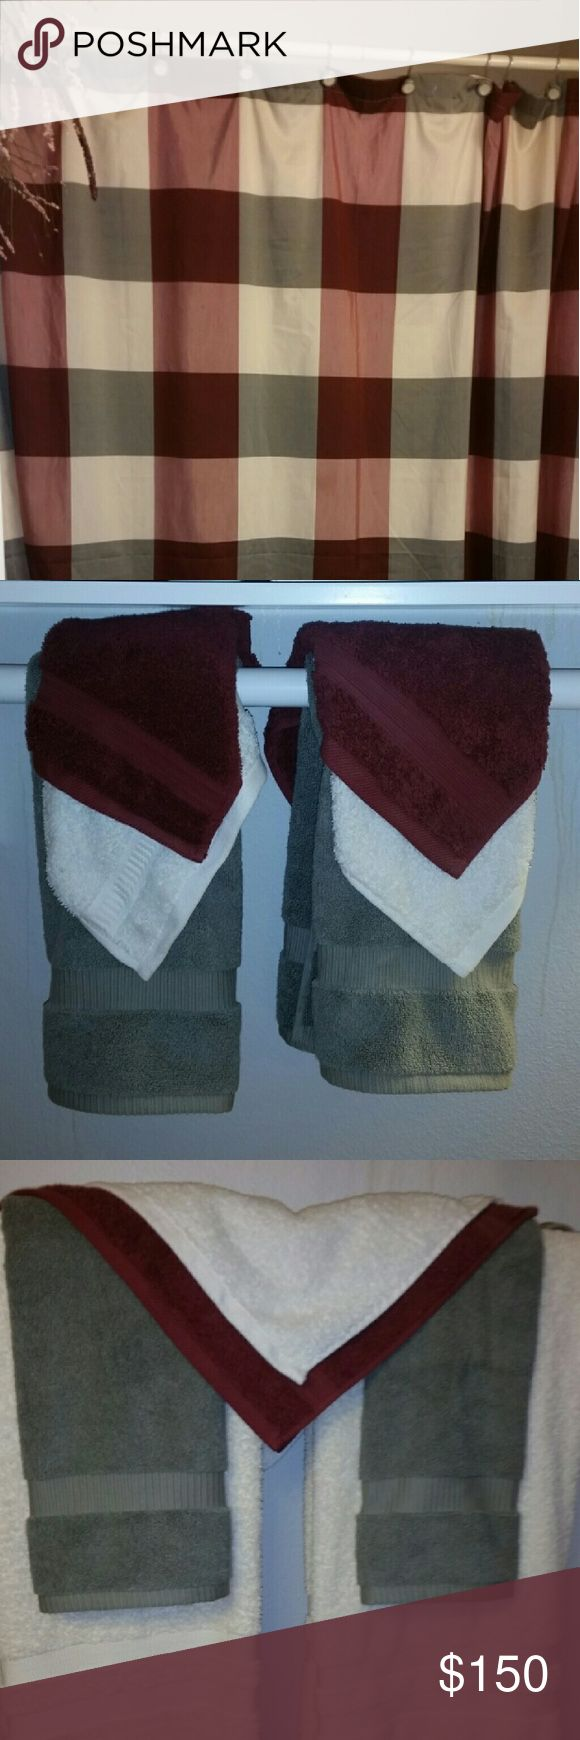 Complete Bathroom Set Sage green,  burgundy & cream shower curtain;  2 full size cream bath towels;  6 wash clothes; 4 hand towels & cream bath mat Other